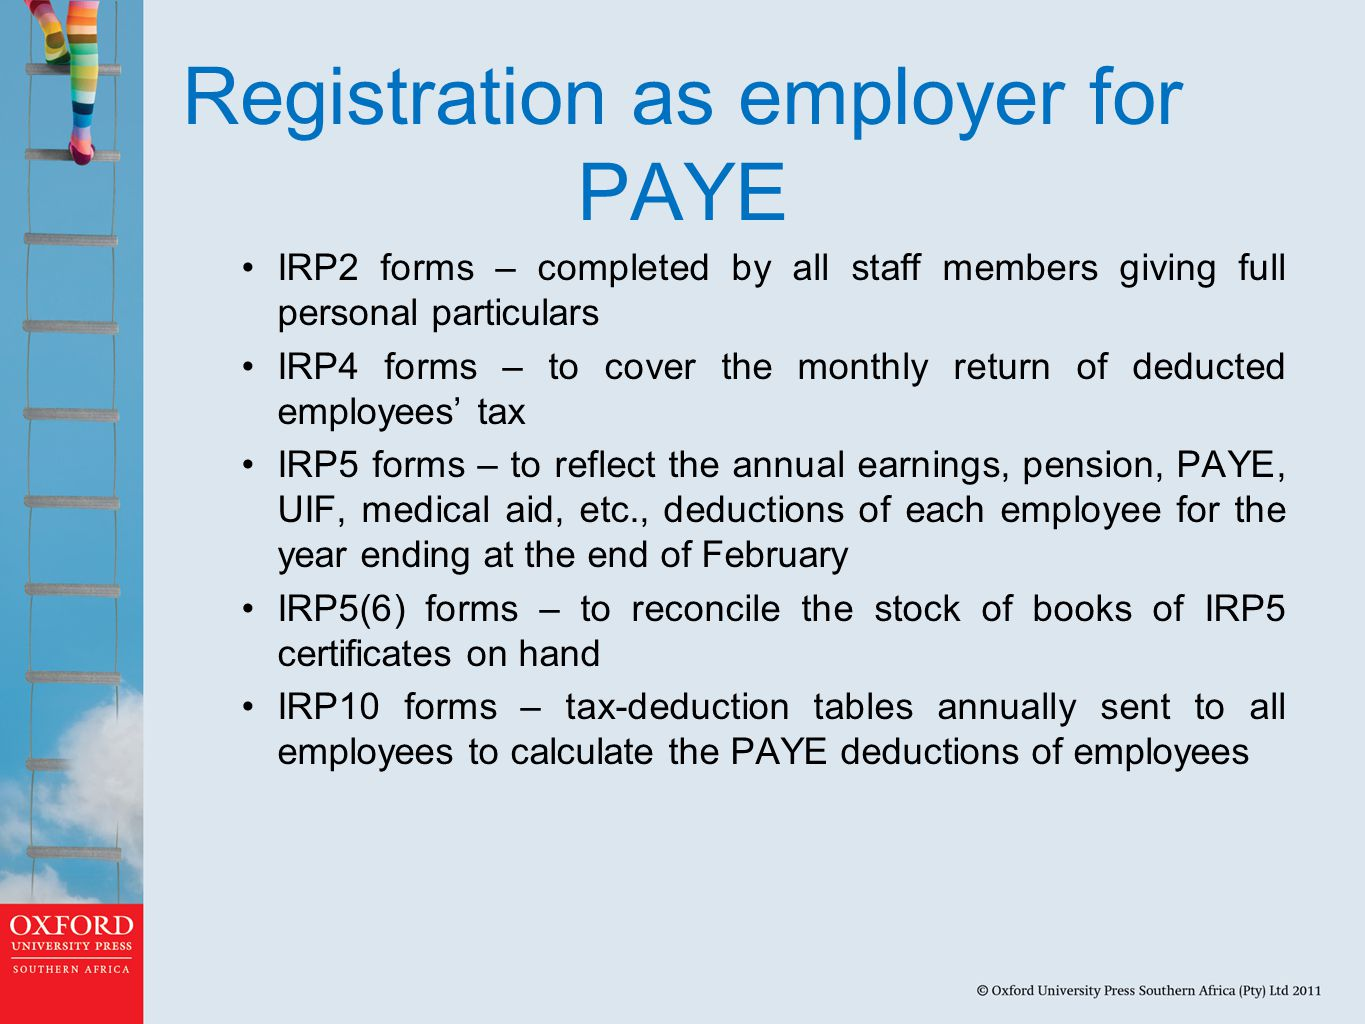 Registration as employer for PAYE